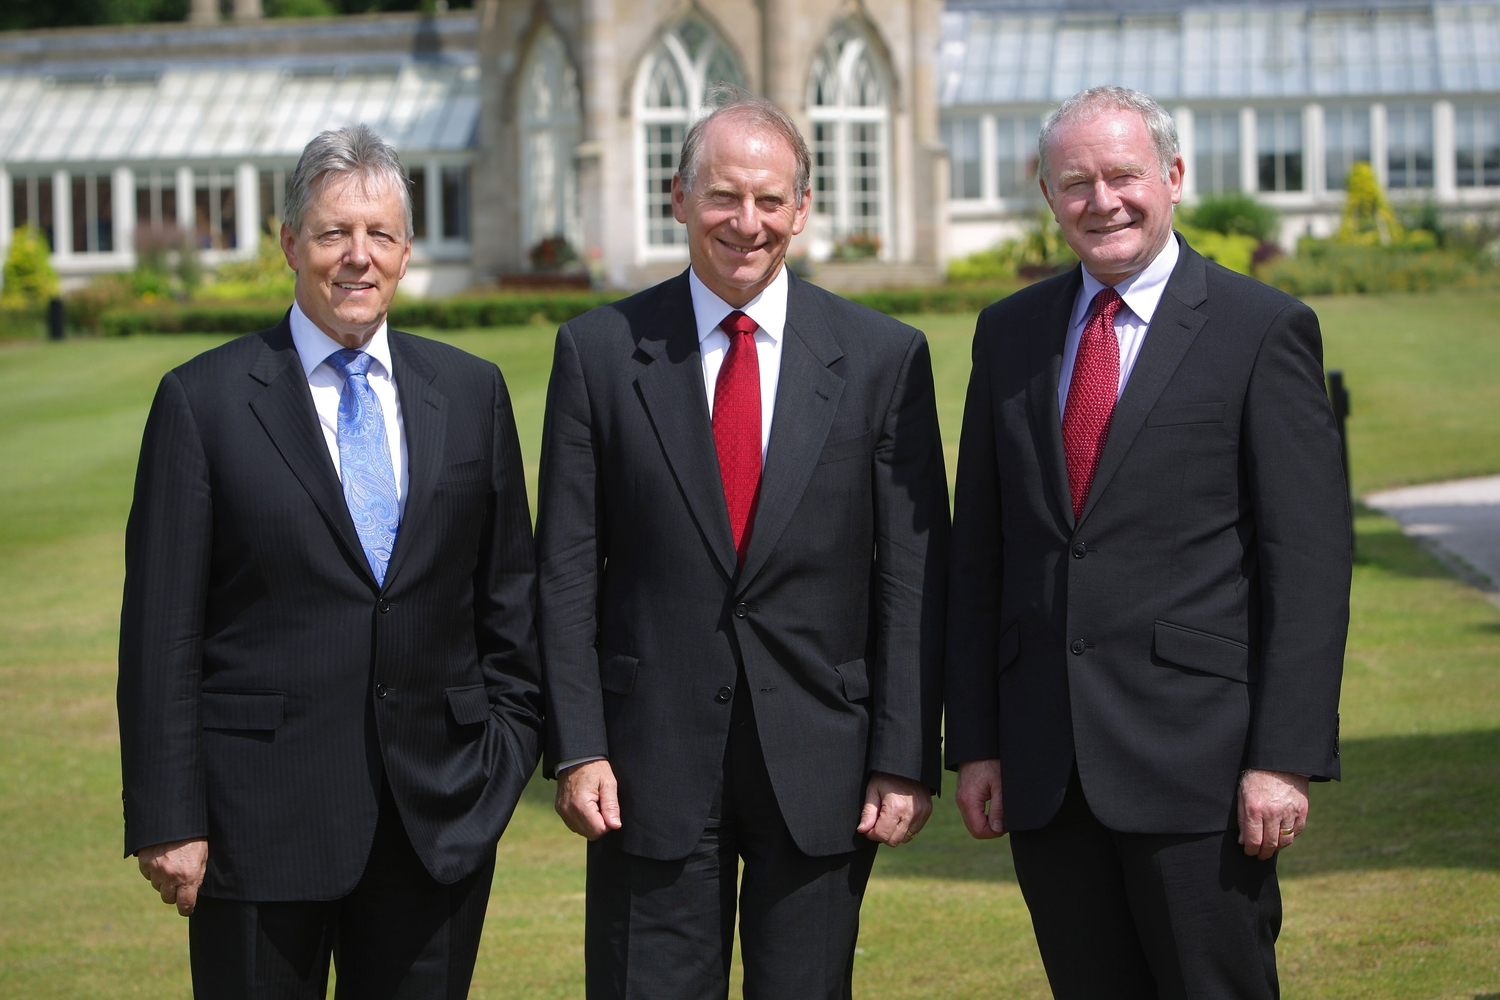 Peter Robinson, Richard Haass and Martin McGuinness at Stormont.